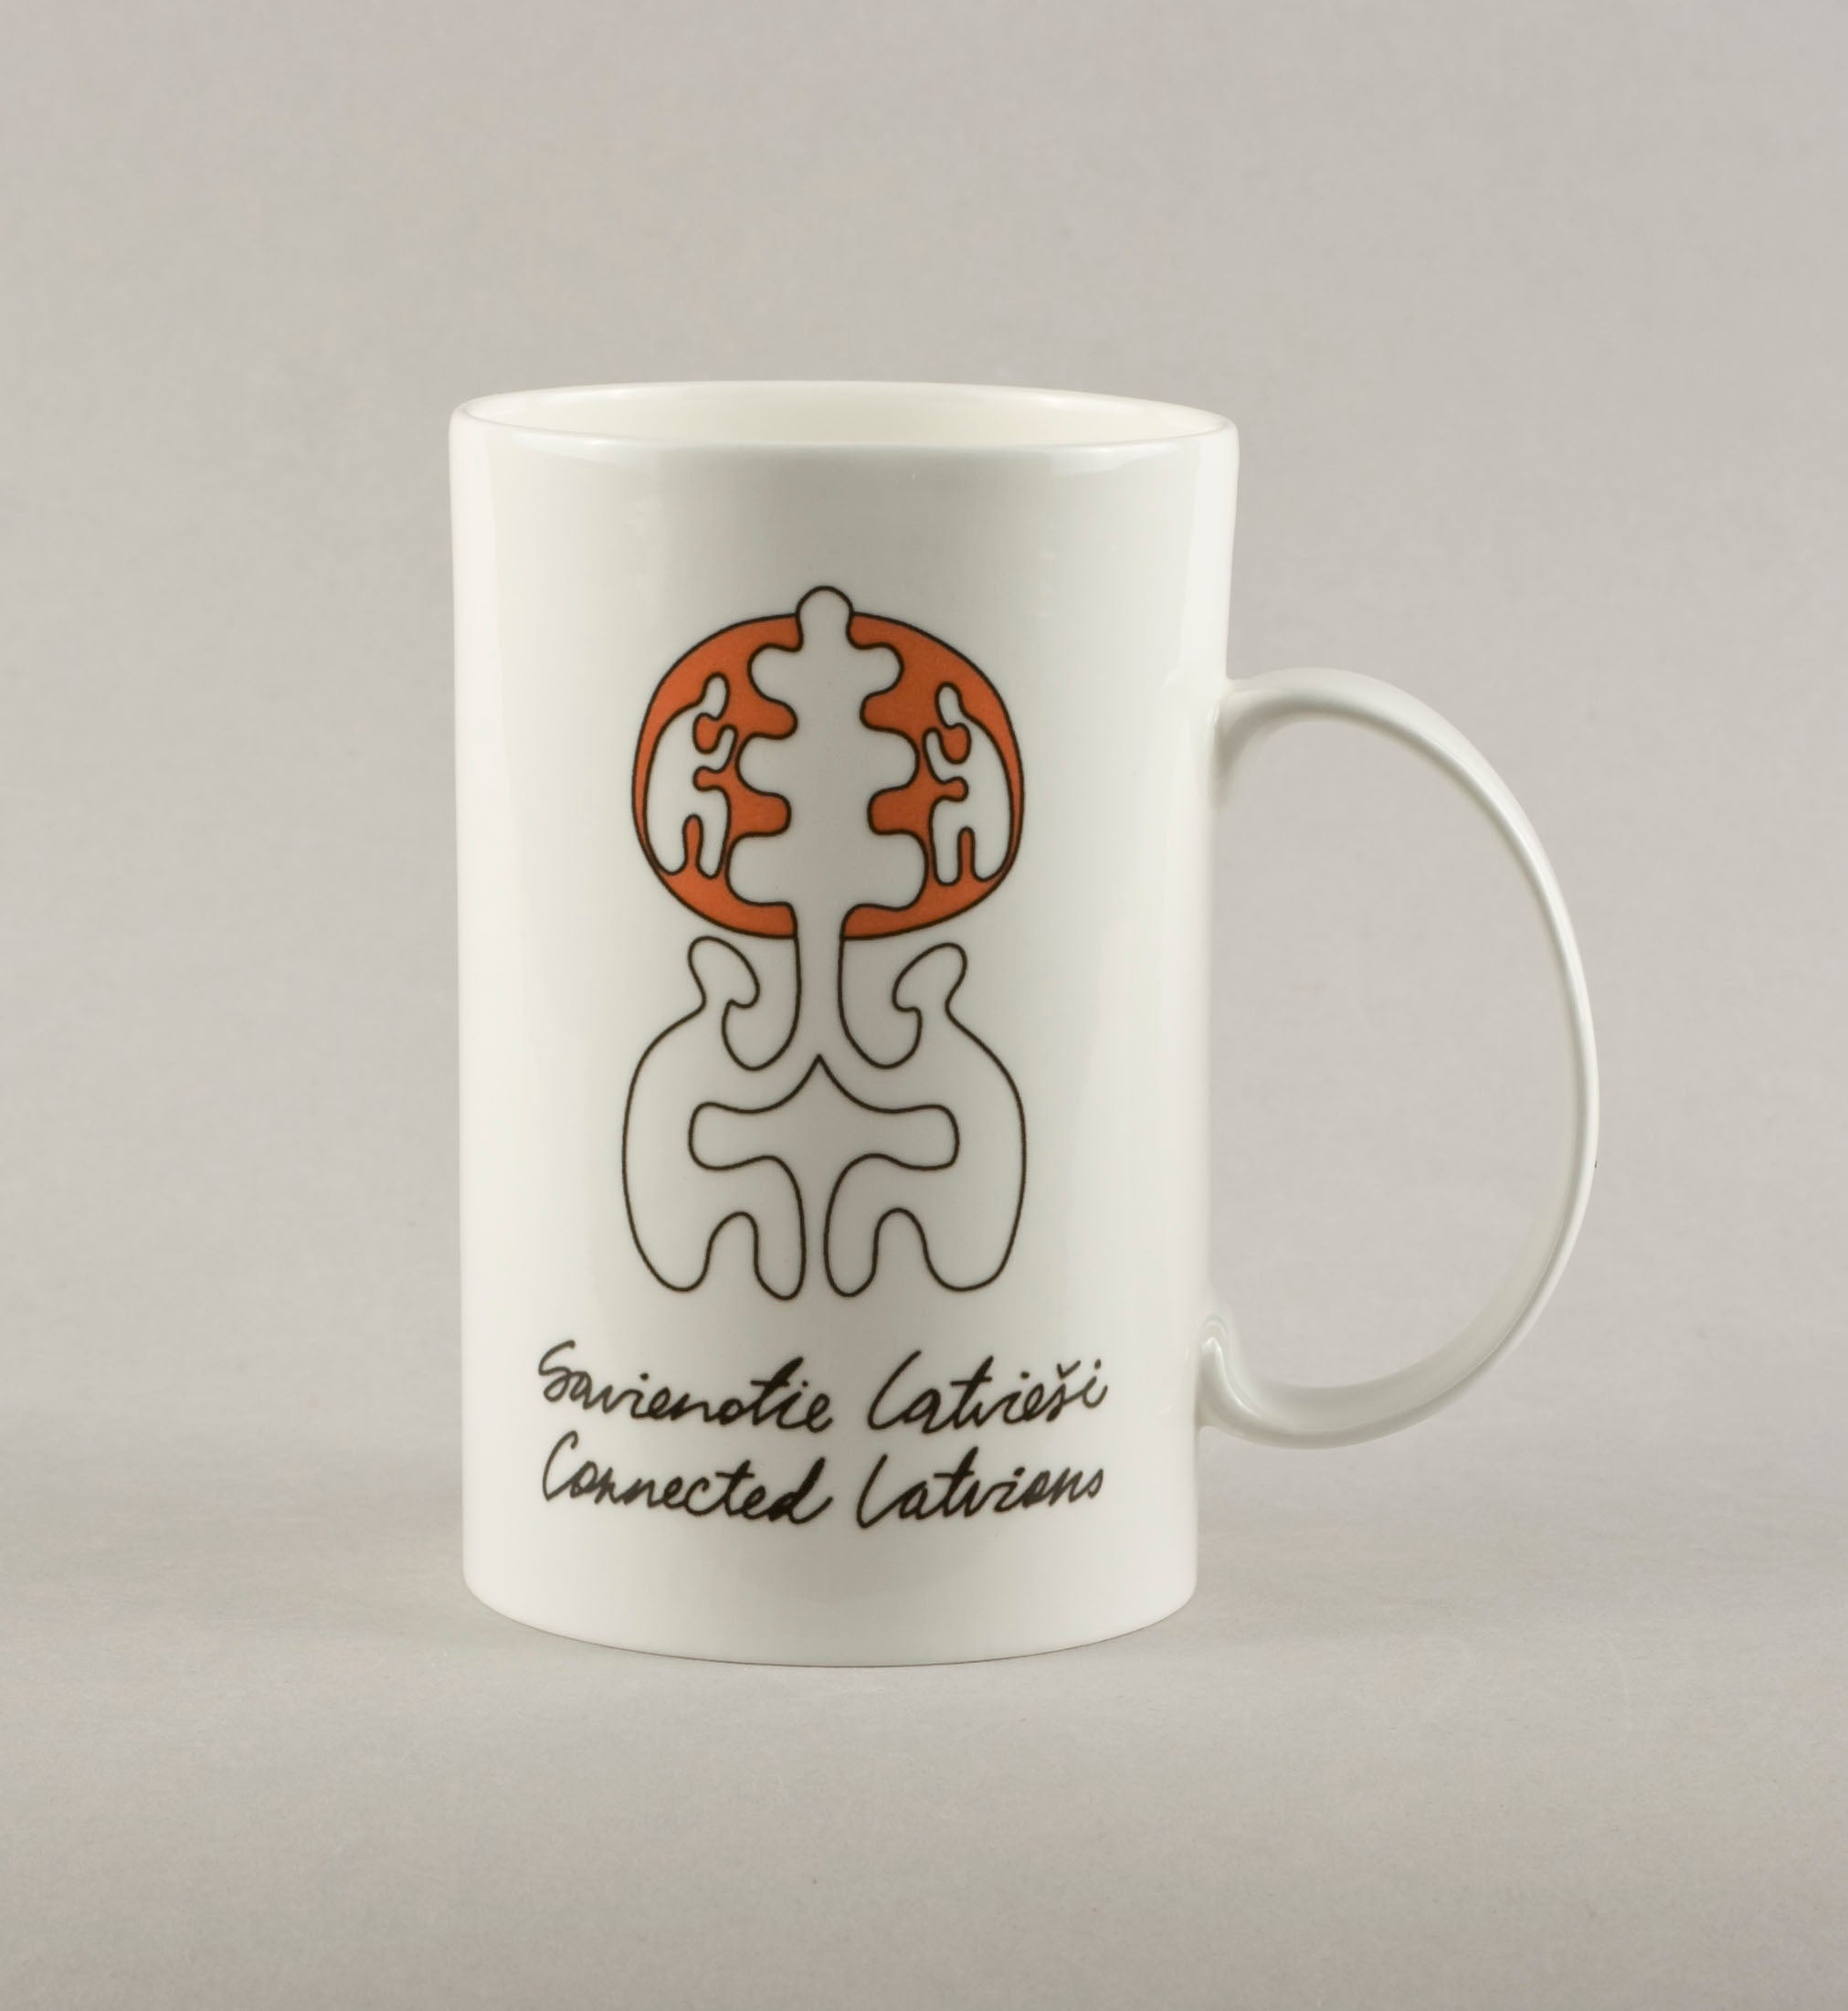 Connected Latvians 2. Medium Mug